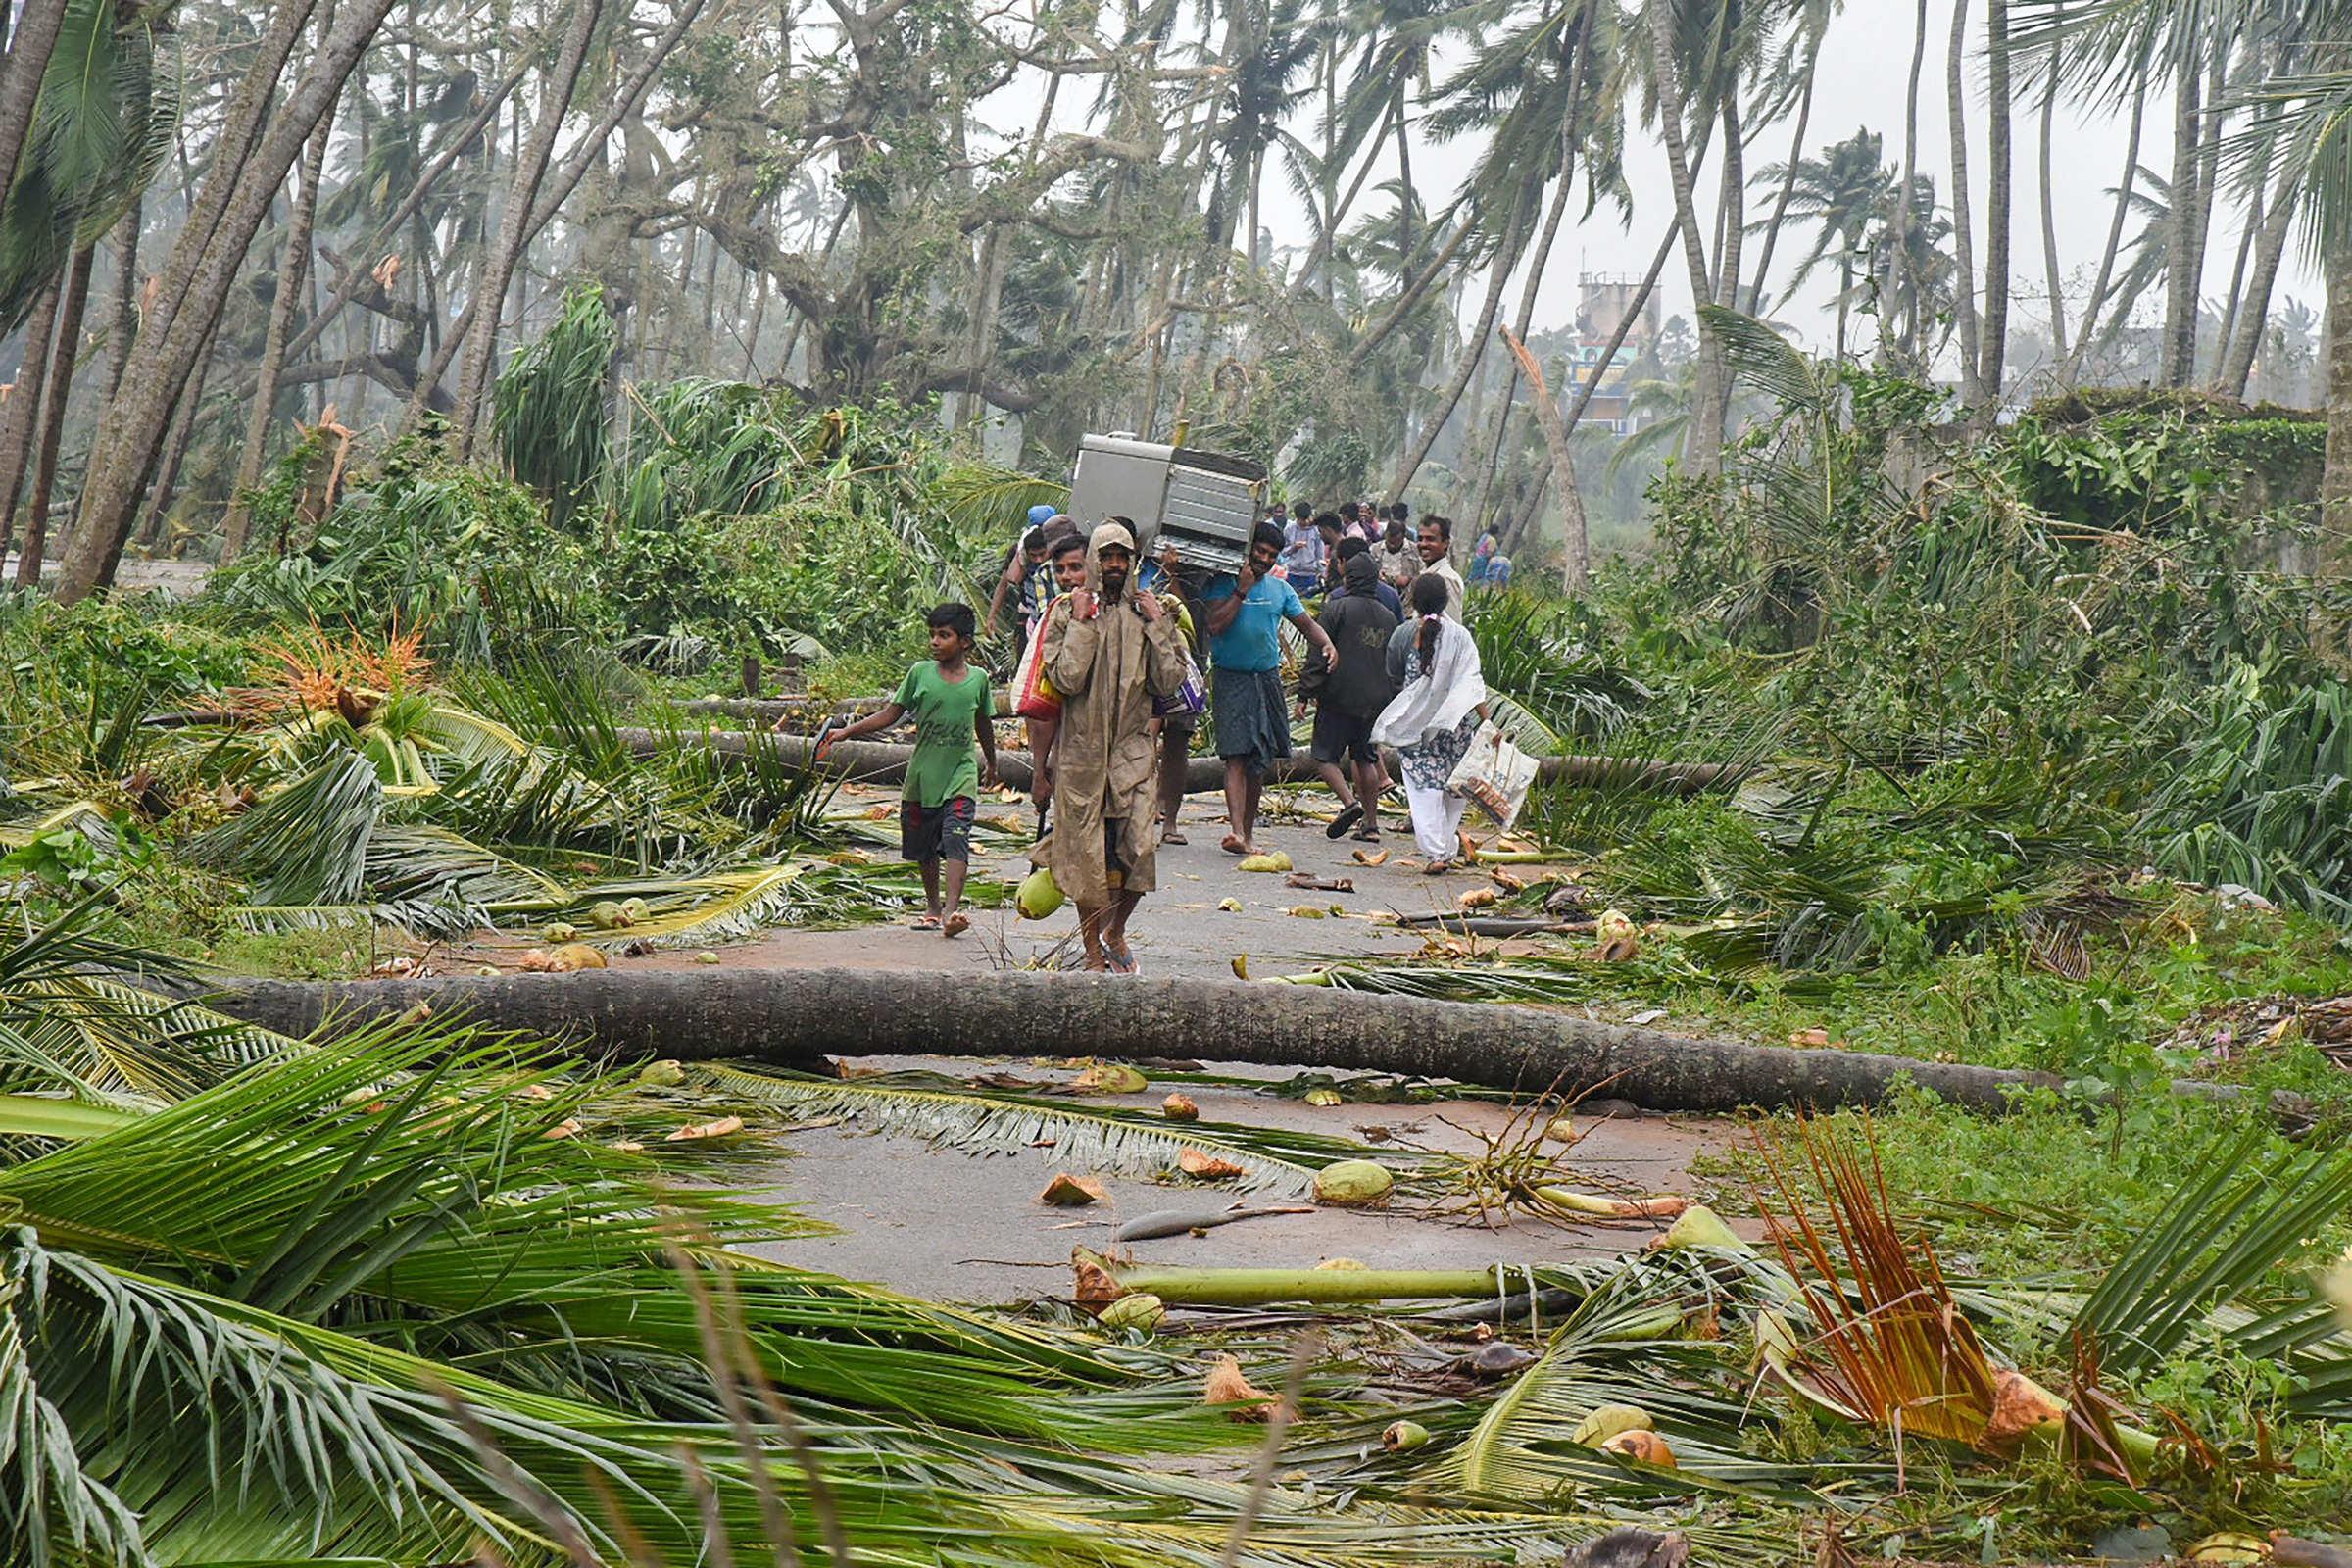 A group of people relocate to safer places as Cyclone Titli hits Barua village, in Srikakulam, on October 11, 2018. PTI file photo